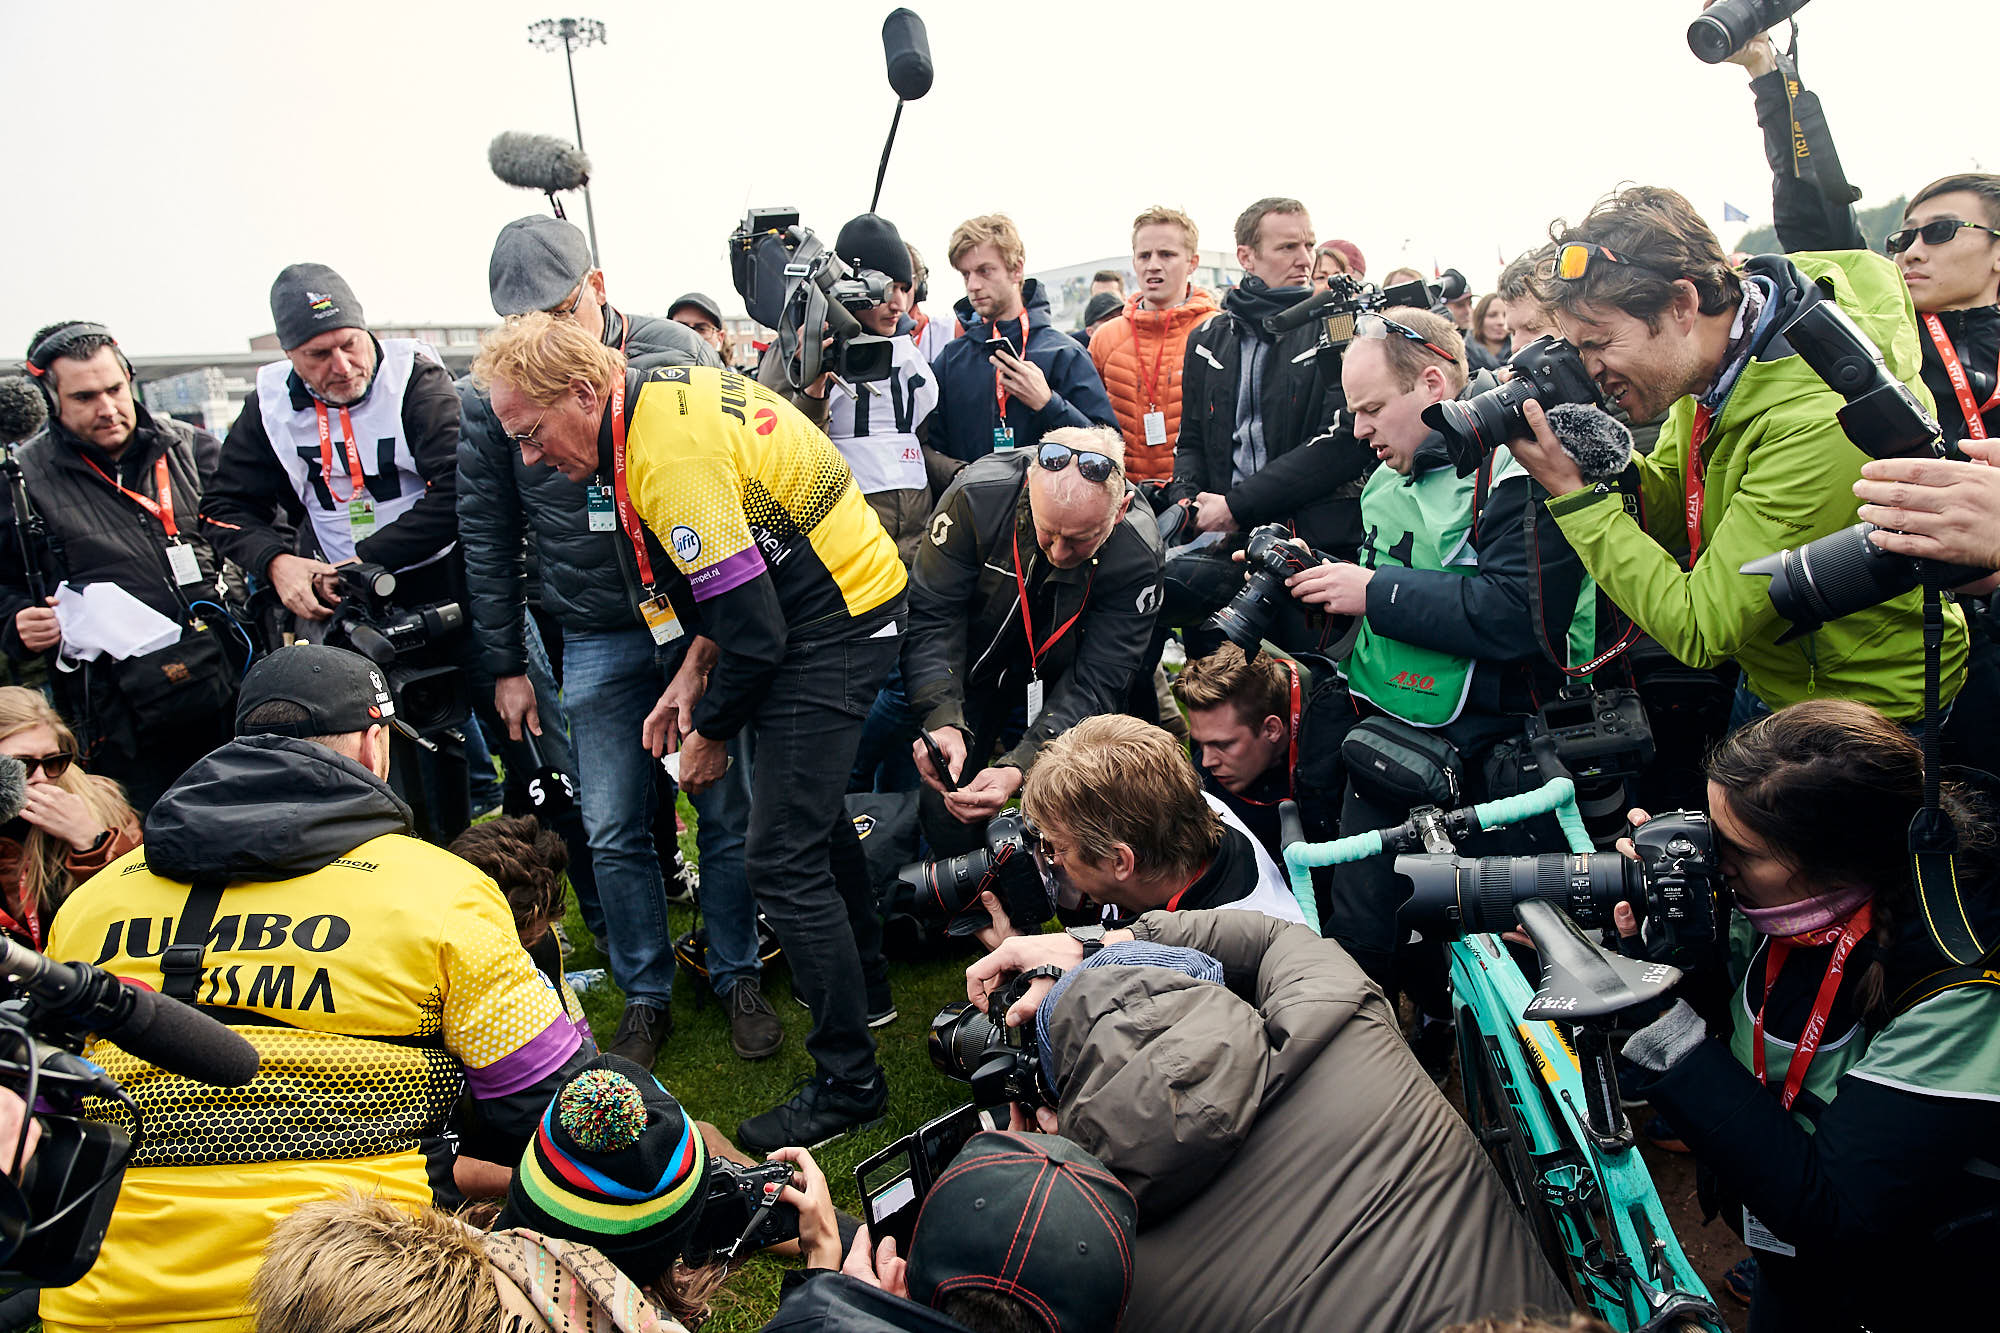 Team Jumbo-Visma rider Wout van Aert surrounded by media after Paris-Roubaix in 2019